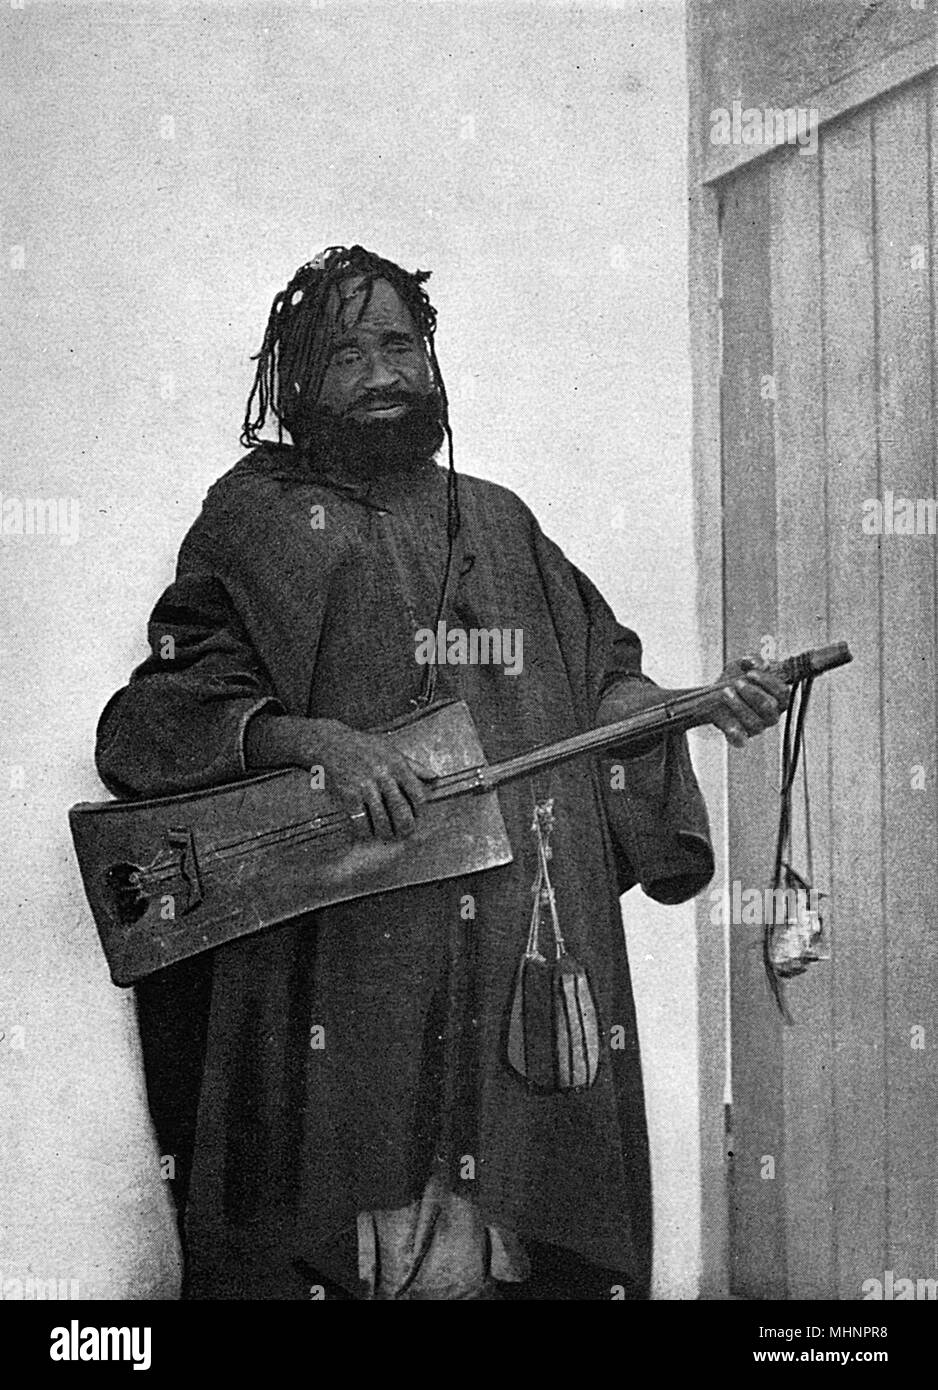 Street Minstrel, Tangier, Morocco, playing a local three-stringed guitar-type instrument., known as a Gimbri.     Date: 1929 - Stock Image